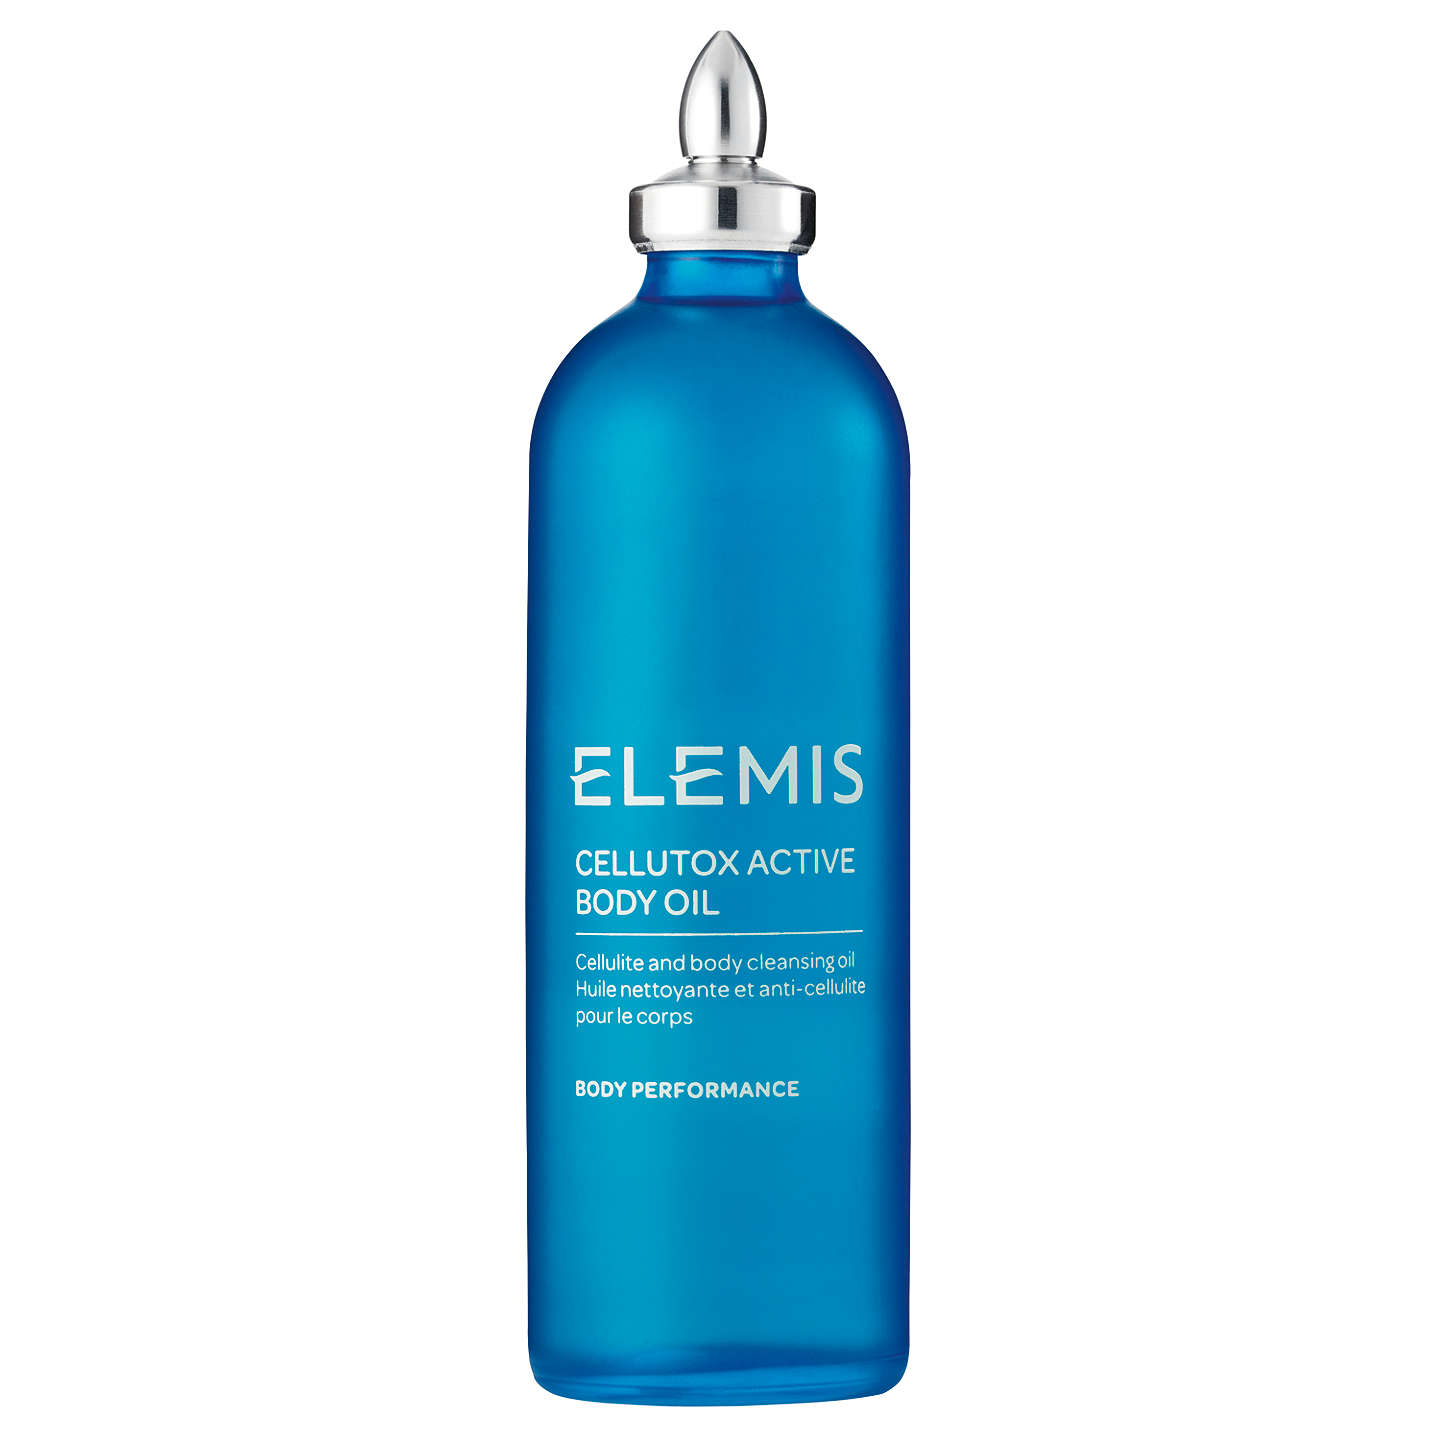 BuyElemis Cellutox Active Body Oil, 100ml Online at johnlewis.com